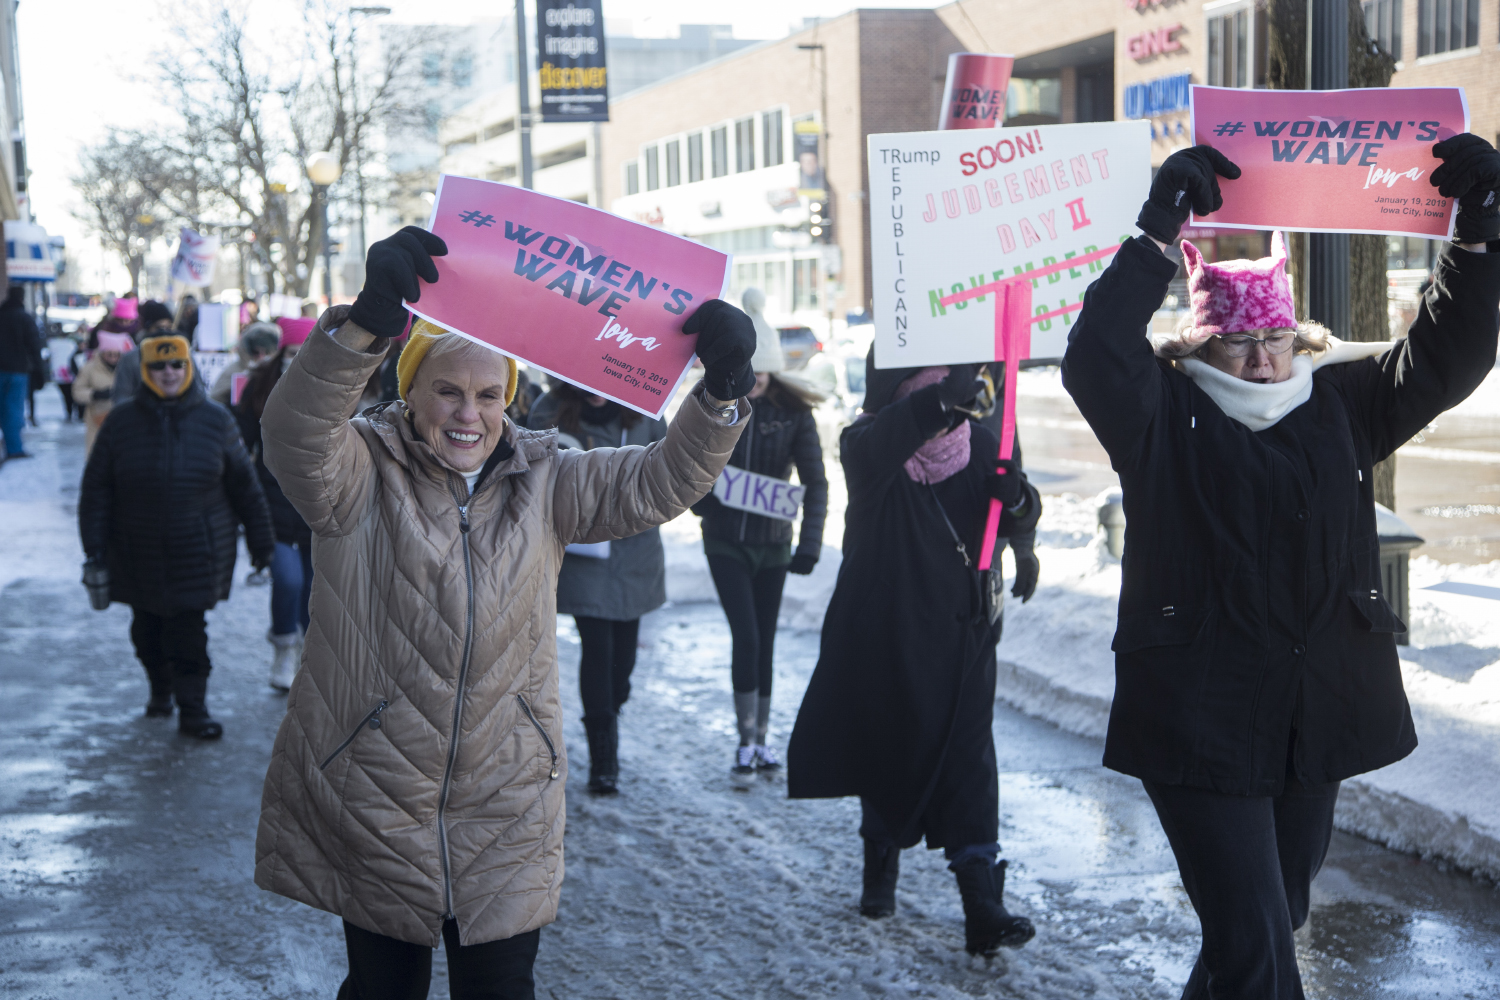 Attendees march on the pedestrian mall for the annual Women's March in Iowa City on Saturday, January 19, 2019. The Women's March is an annual event that started in 2017 following the inauguration of President Donald Trump. The march advocates for a range of issues including women's rights,  healthcare reform, LGBTQ+ rights, and environmental issues.